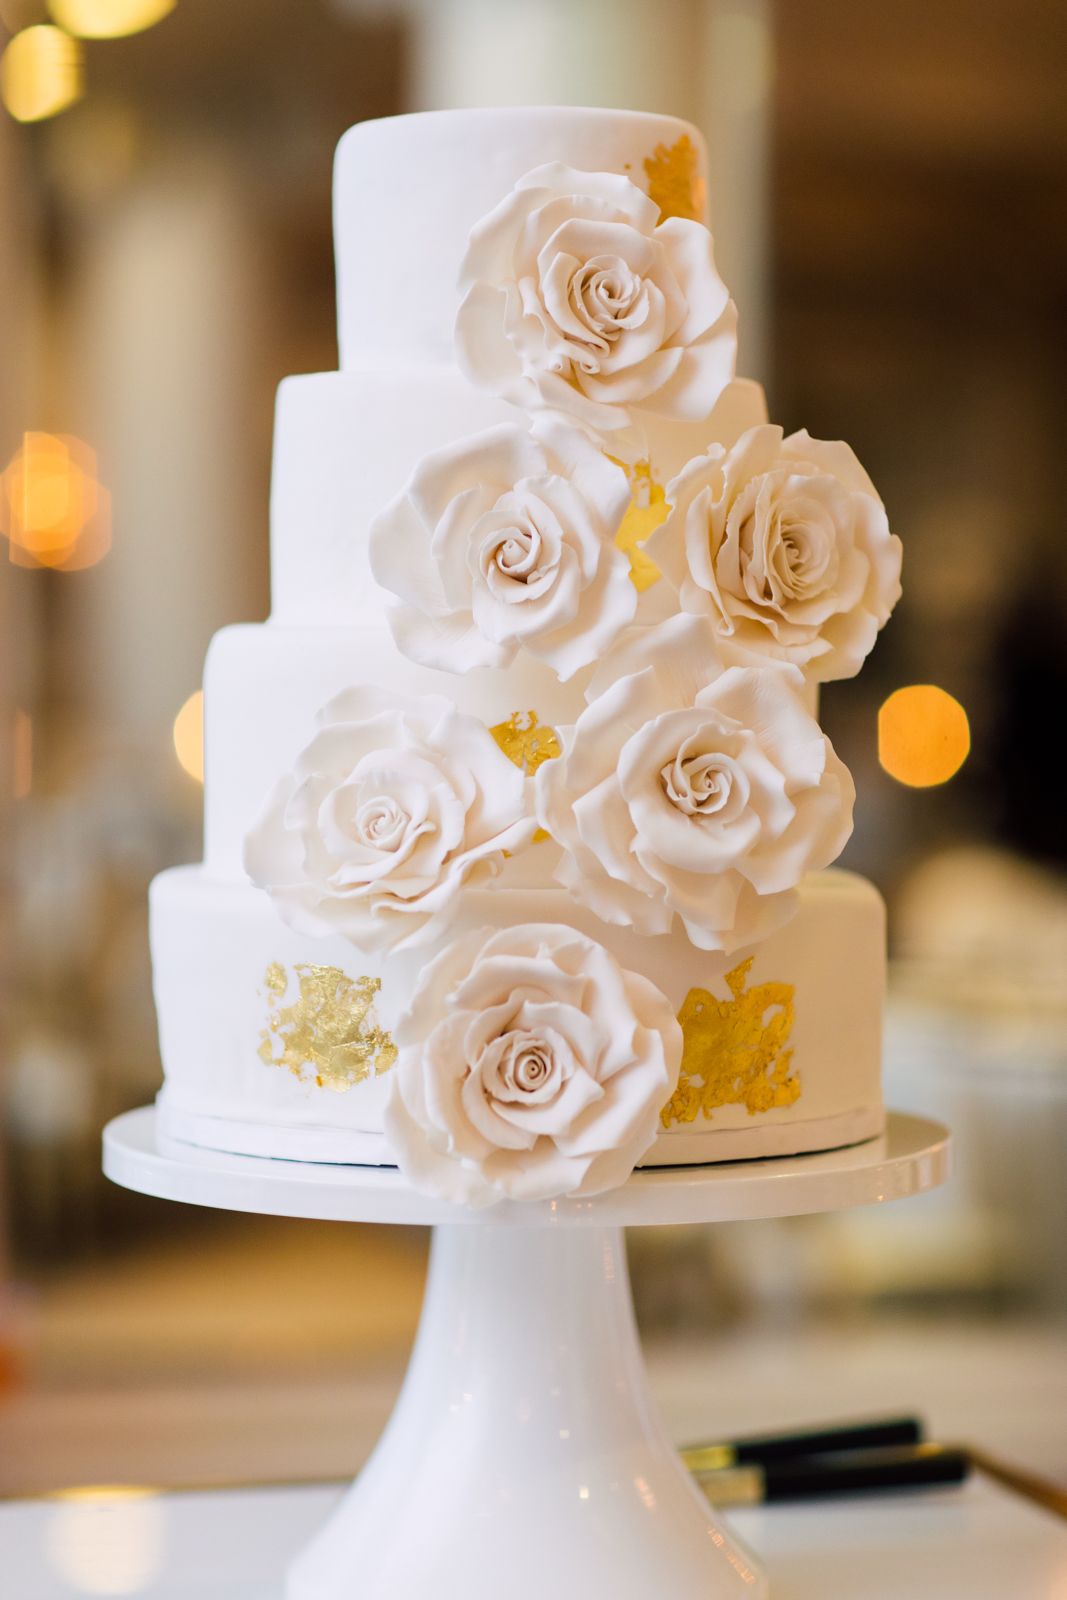 Ania Bialecki wedding cake